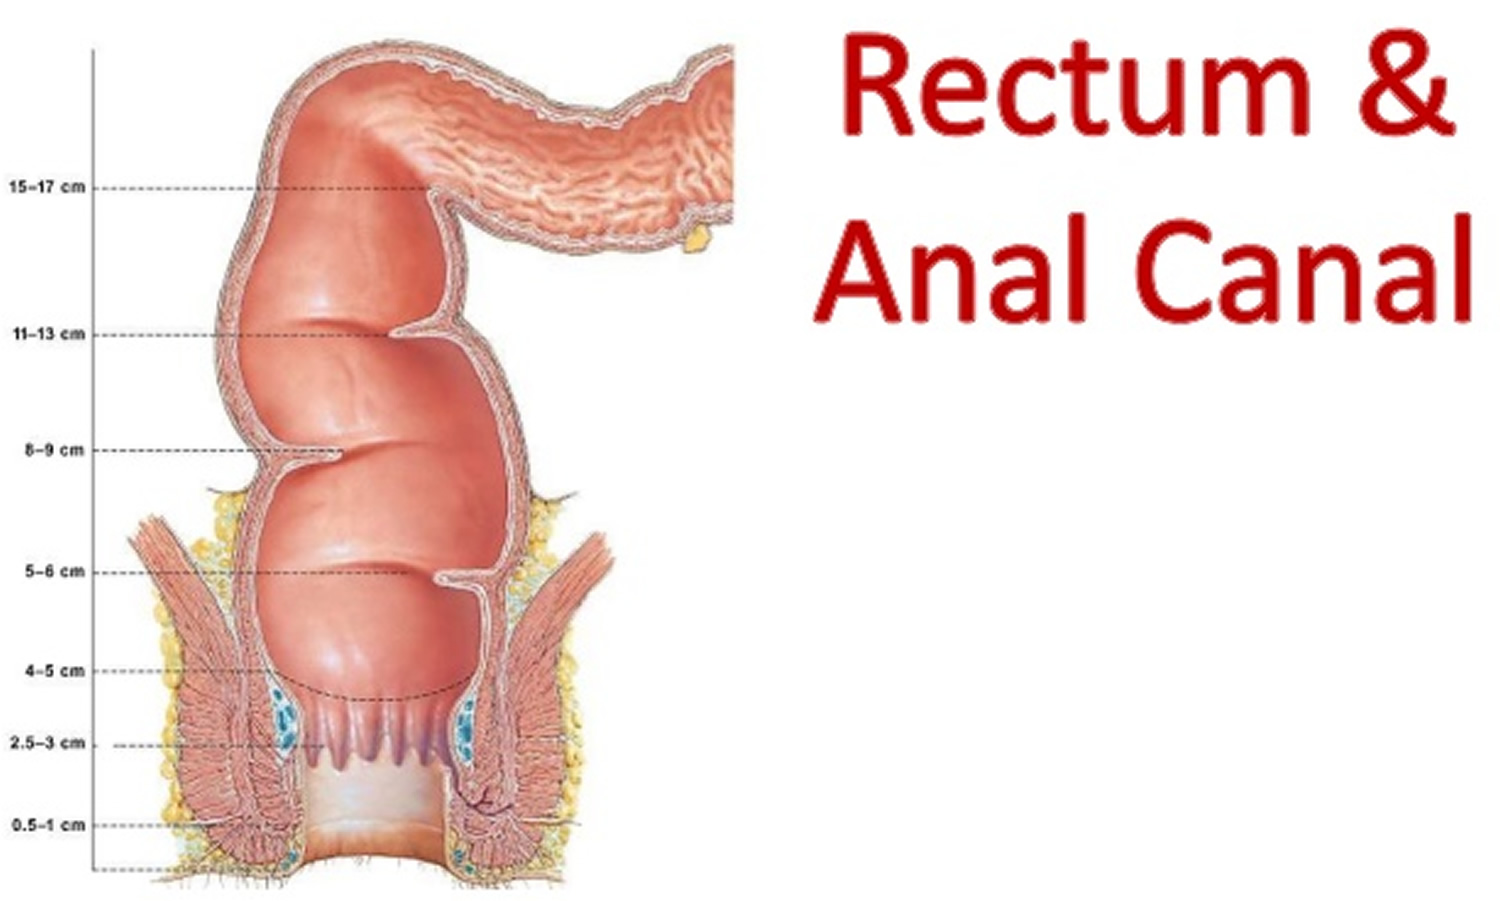 The anatomy of the anus